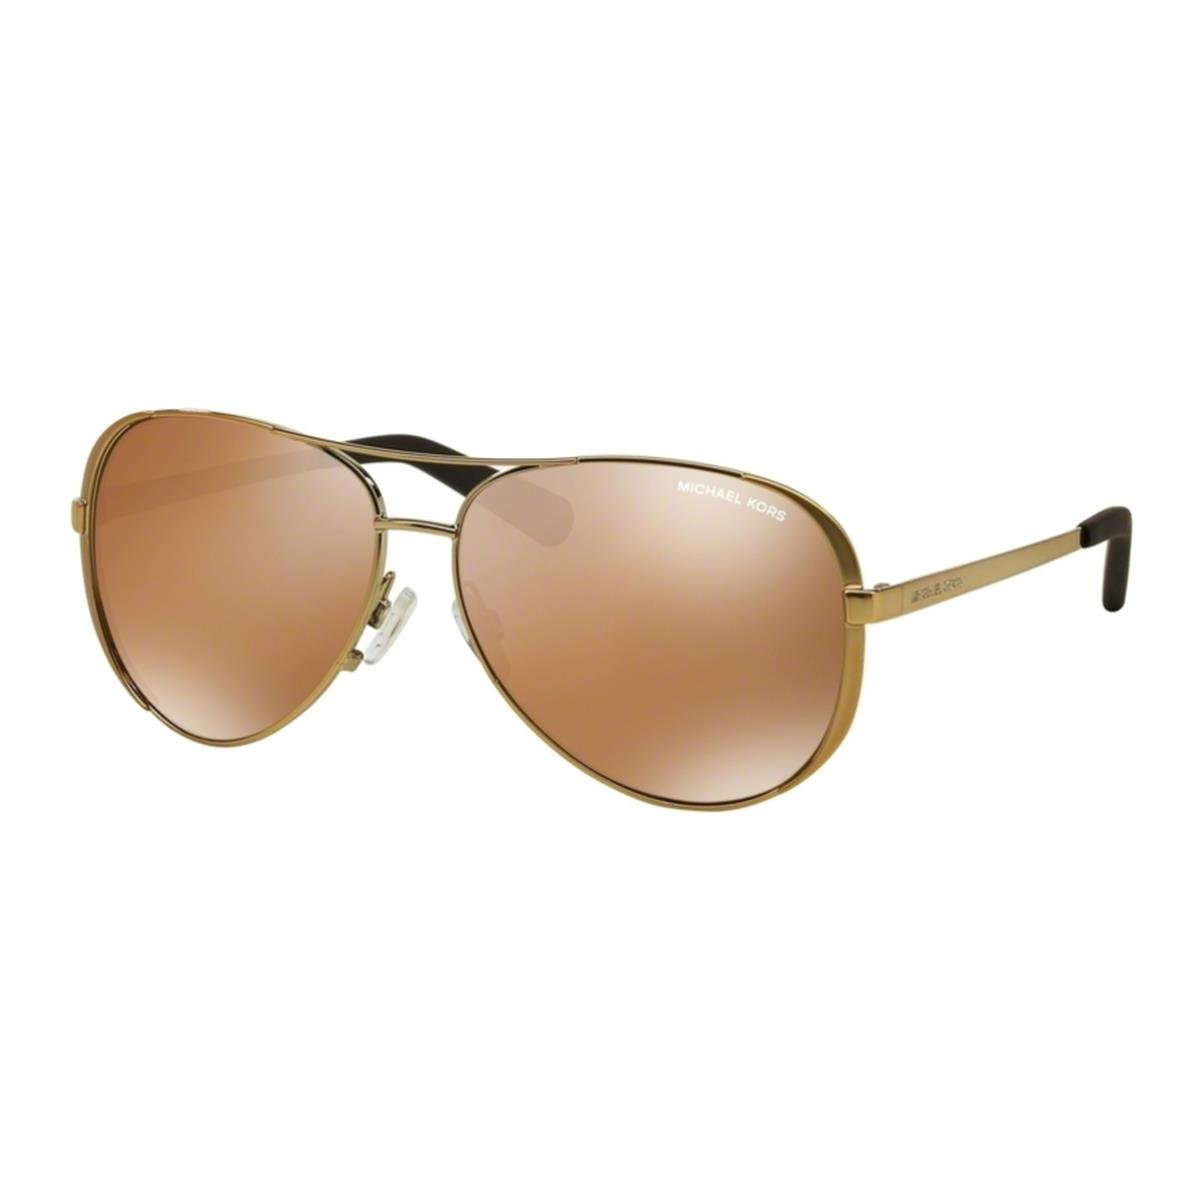 Michael Kors Womens Chelsea Polarized Sunglasses